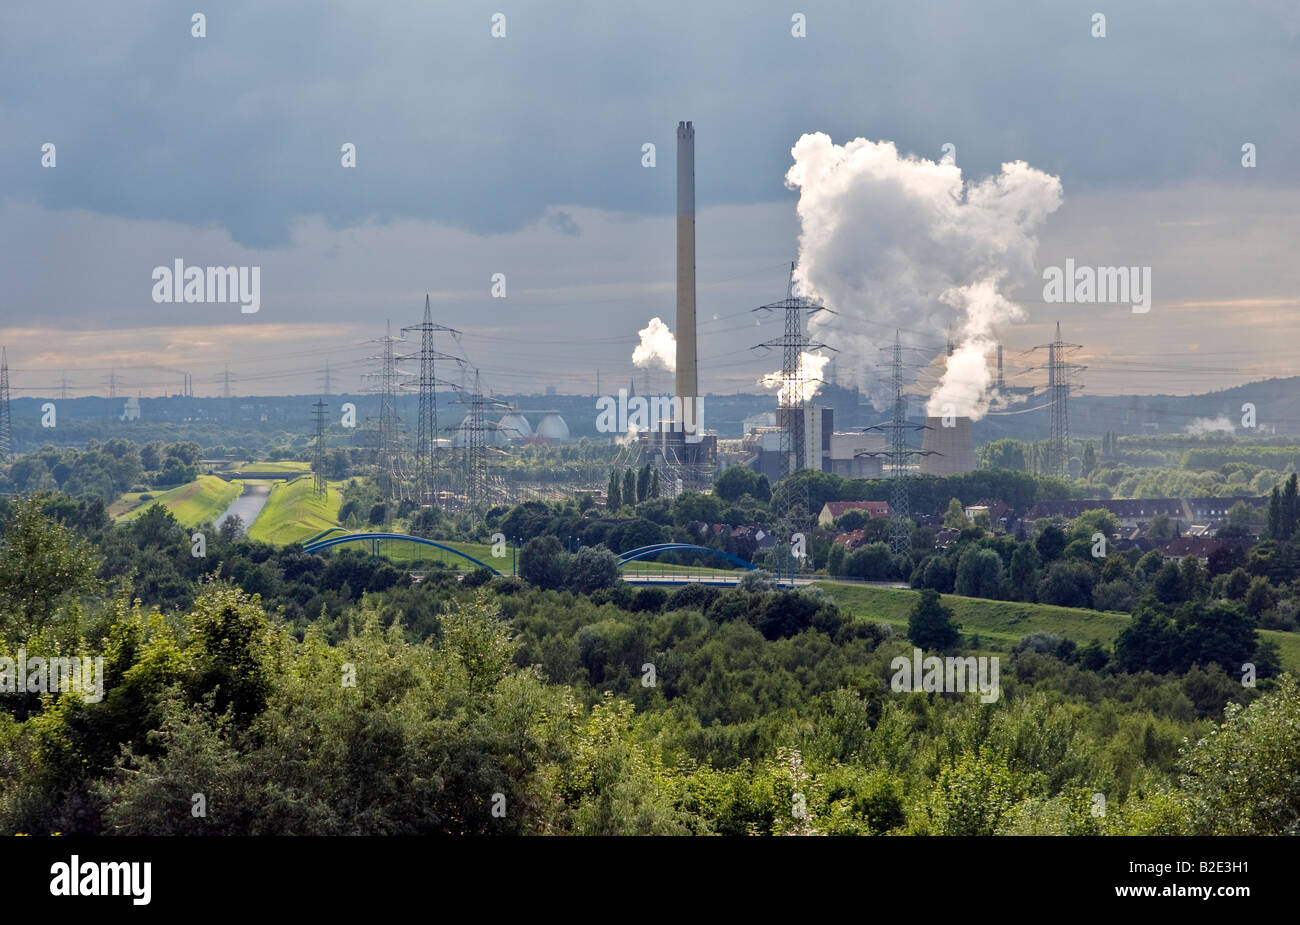 Emscher River waste water canal, Bostrop, Ruhr Valley, Germany. Garbage combustion power plant Essen-Karnap run - Stock Image